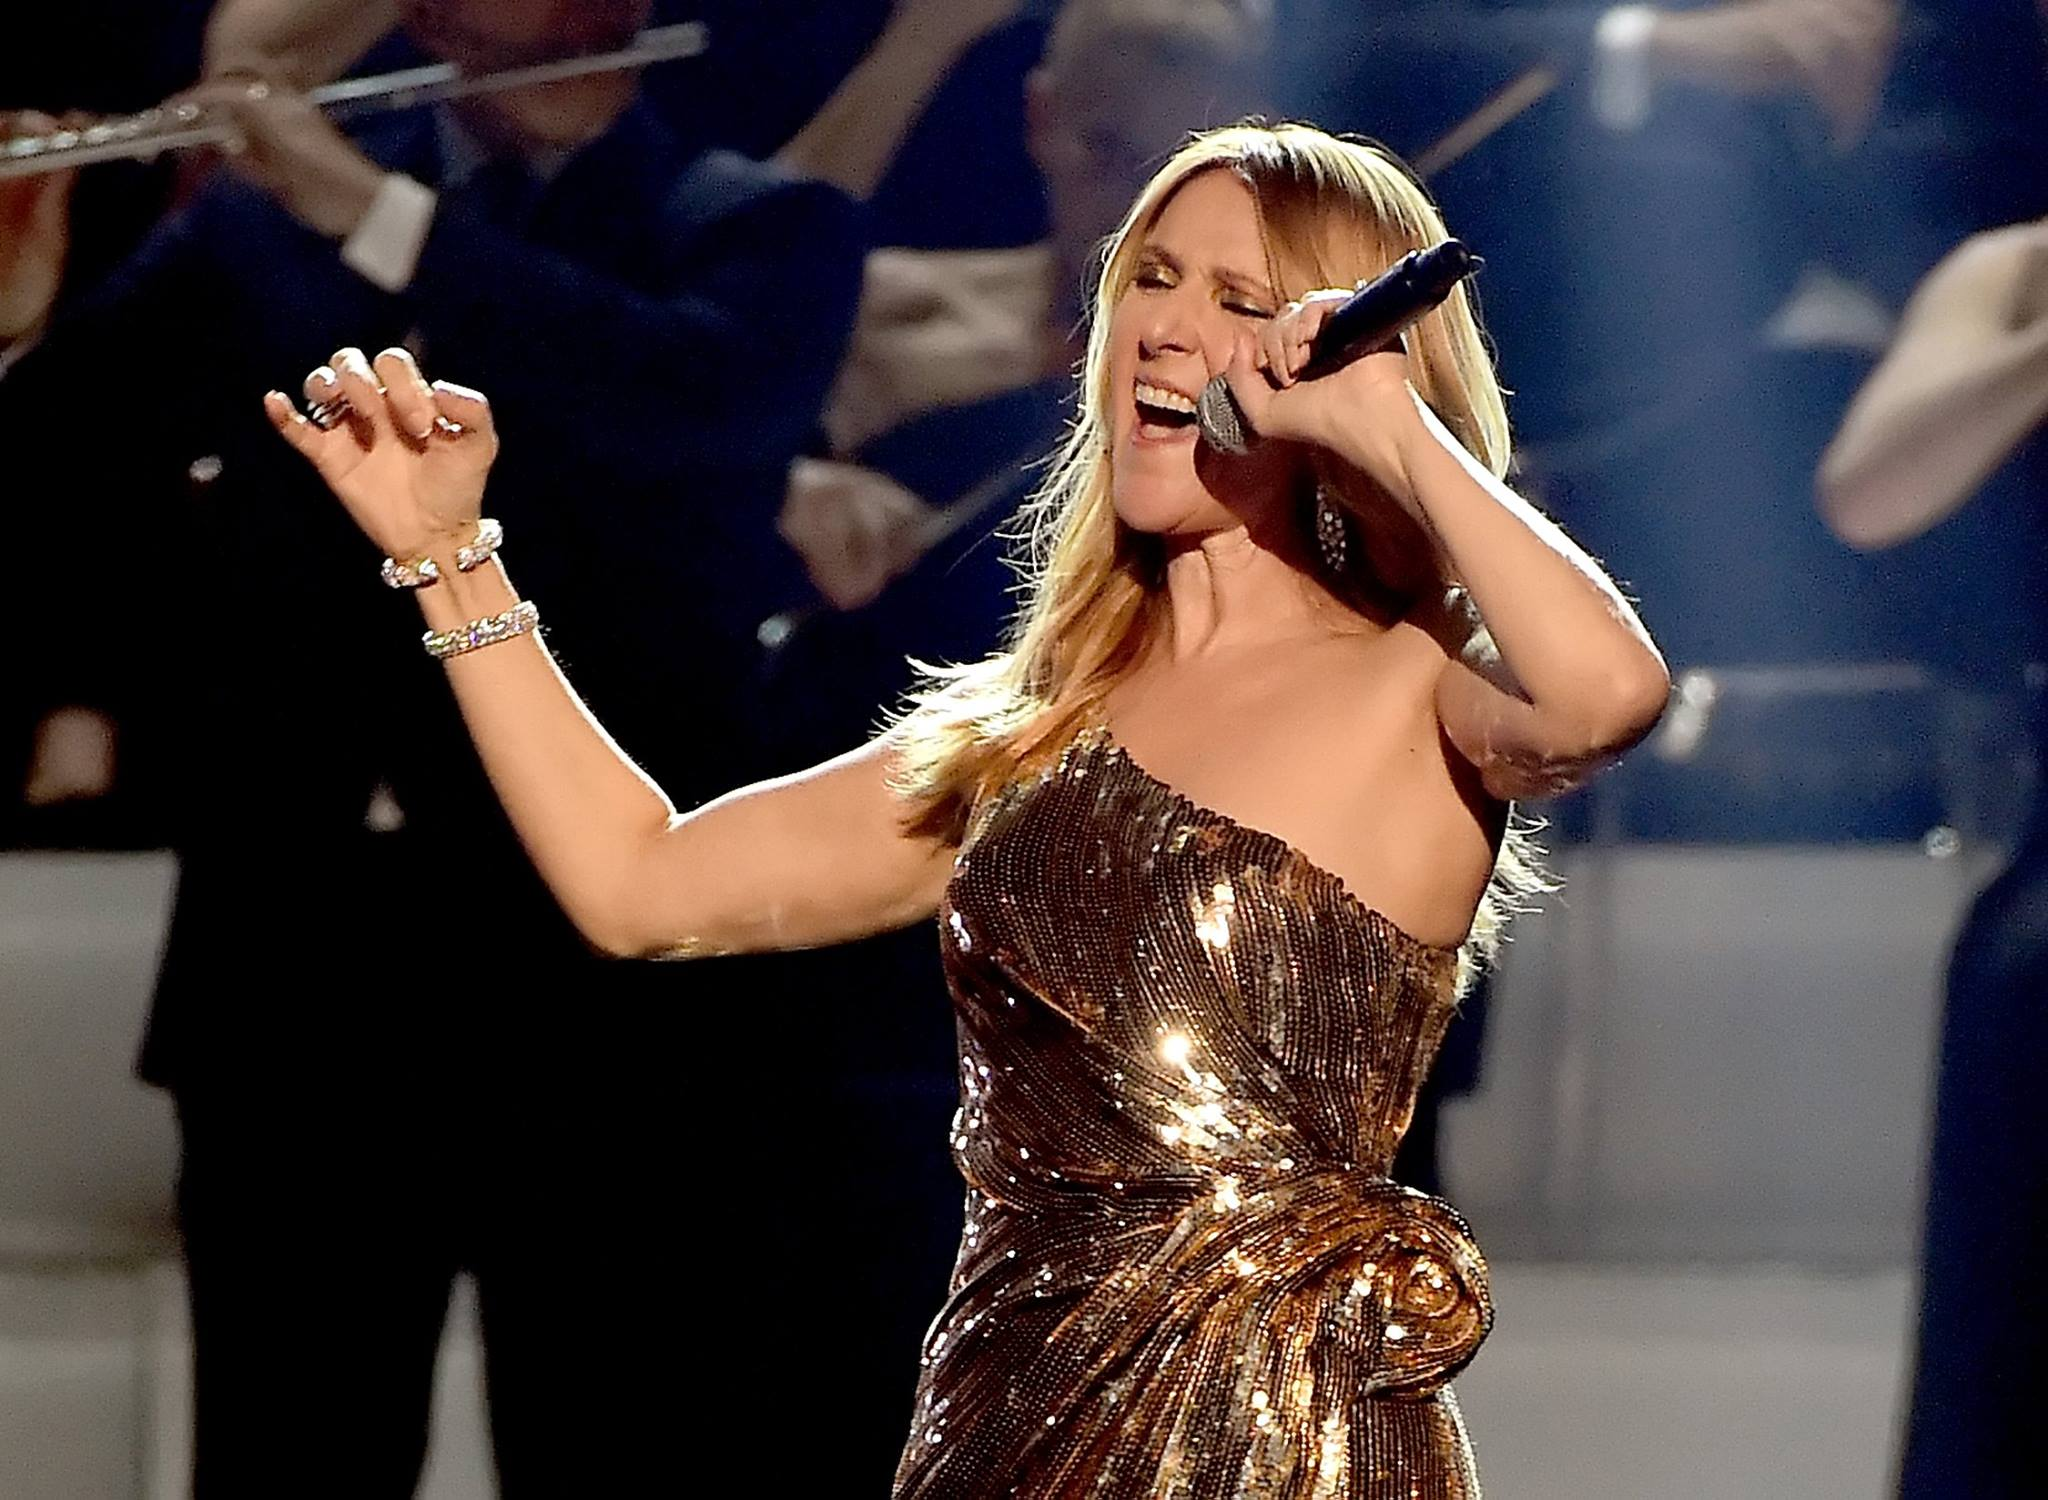 Celine Dion handles a fan's uninvited stage antics like a pro